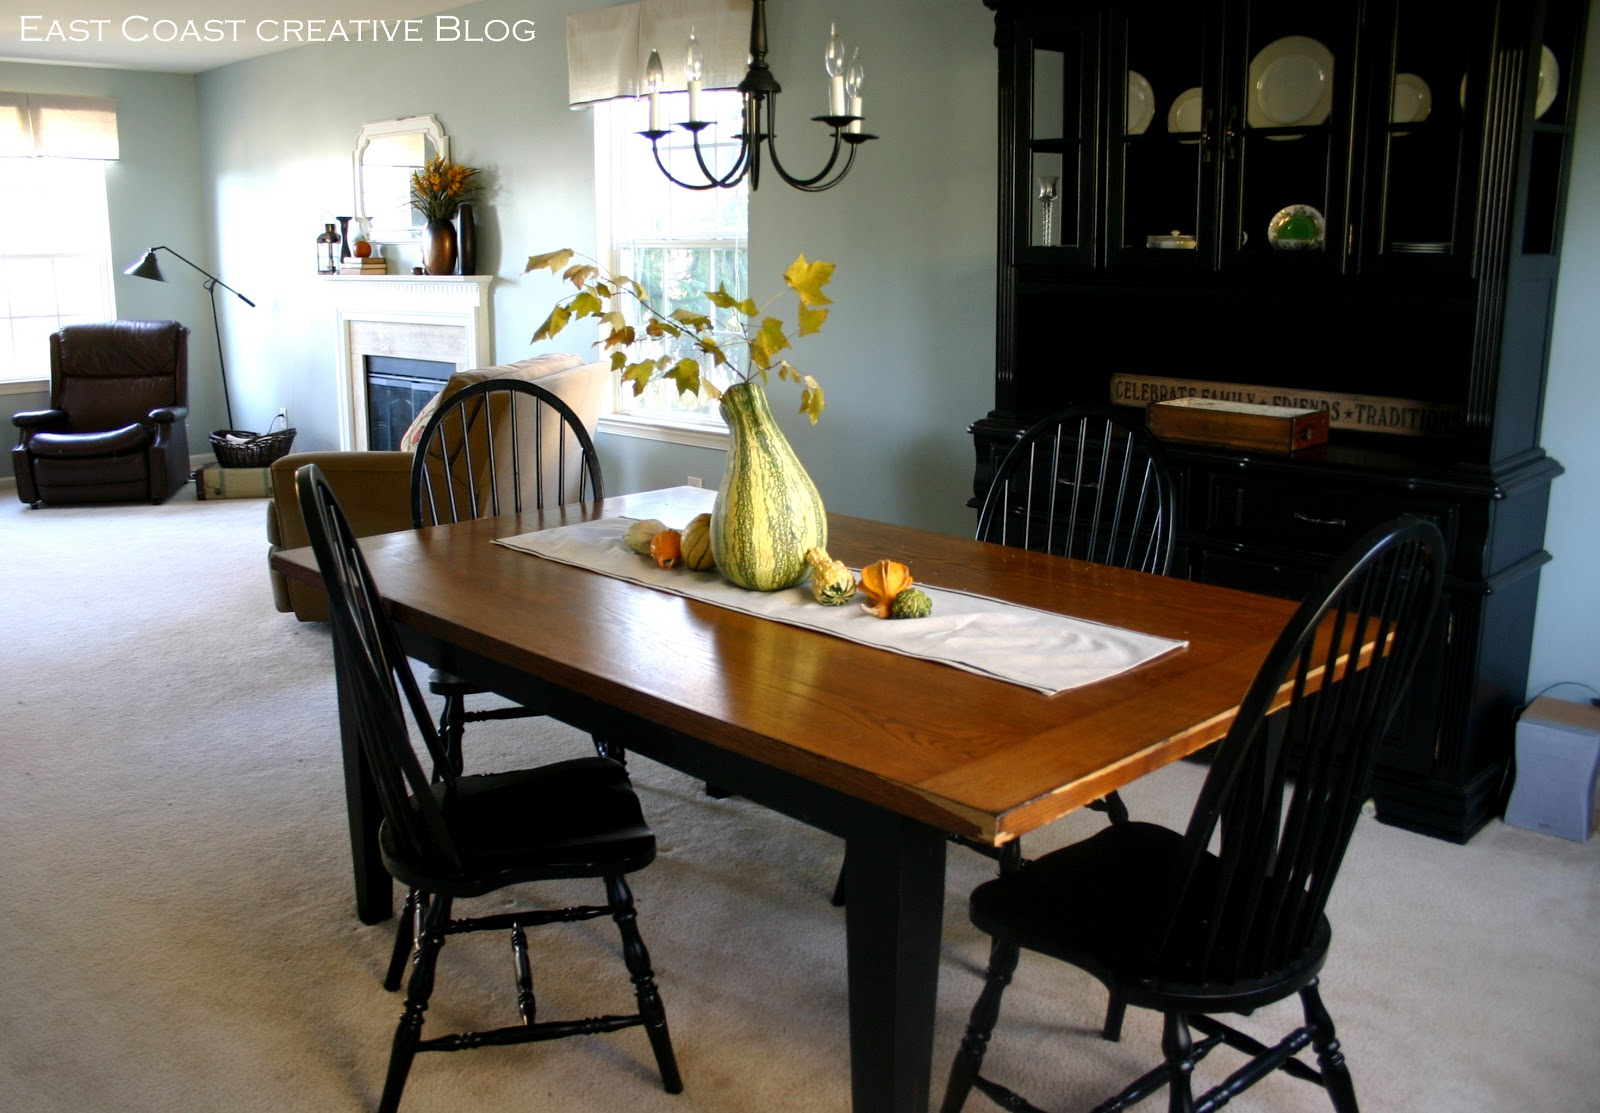 Refinished Dining Room Table Furniture Makeover East Coast Creative Blog